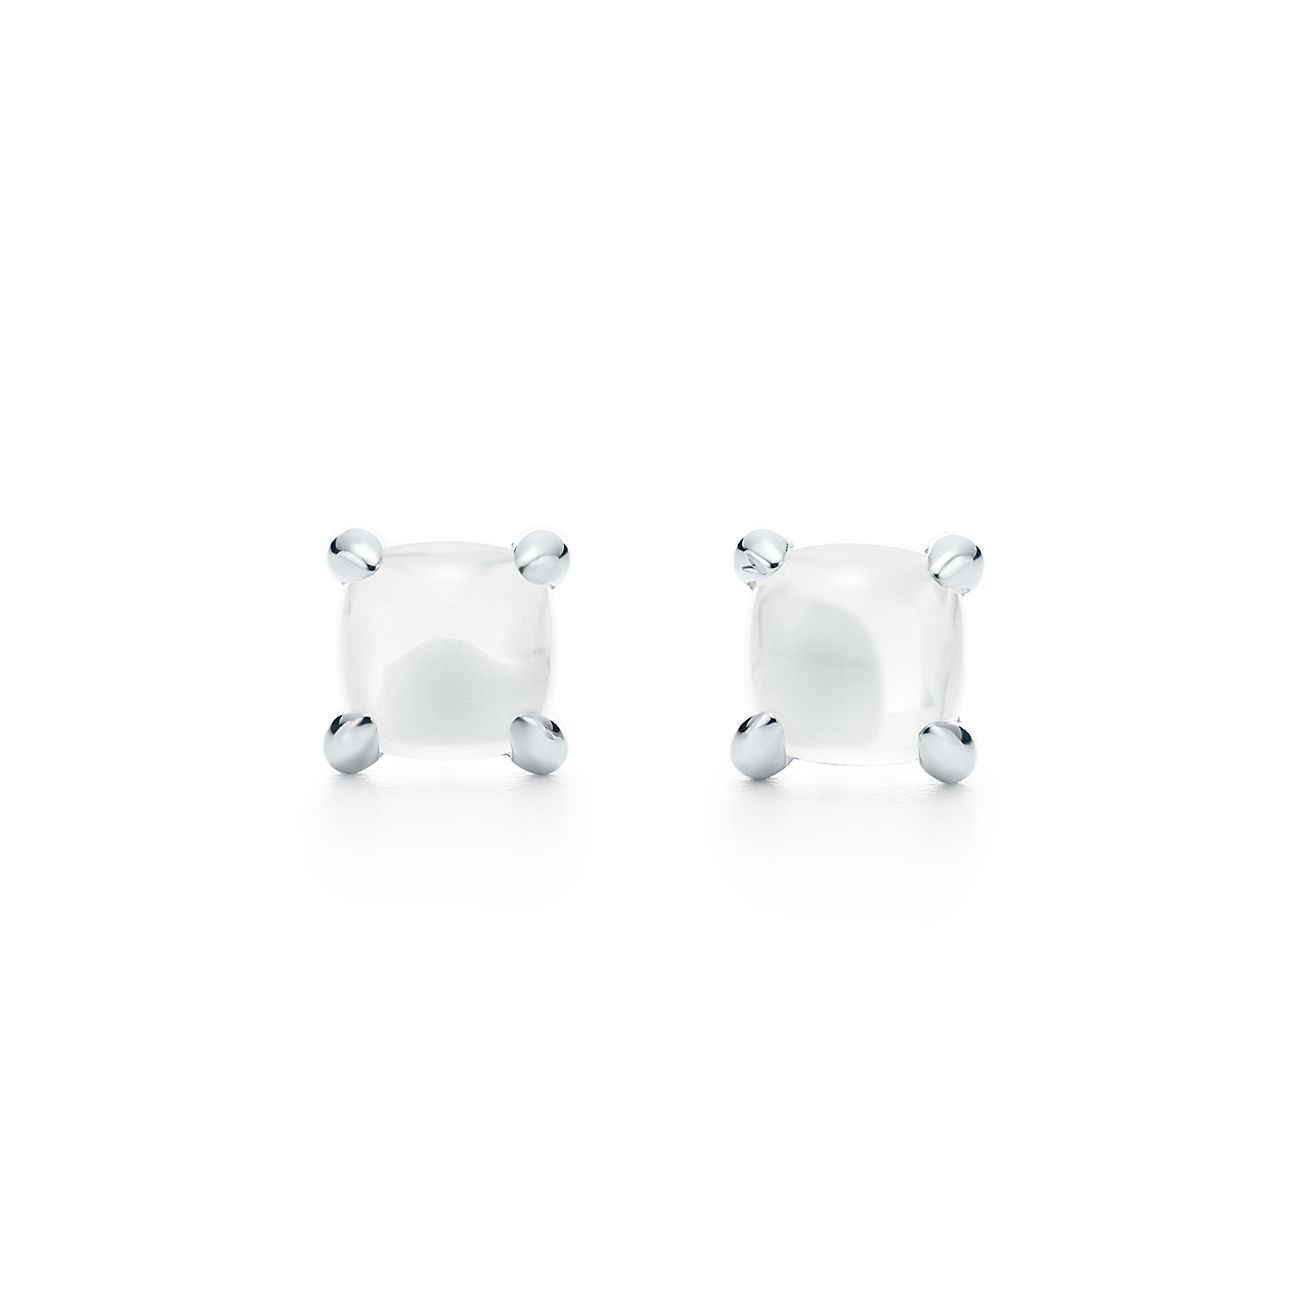 Palomas Sugar Stacks earrings in sterling silver with milky quartz Tiffany & Co.